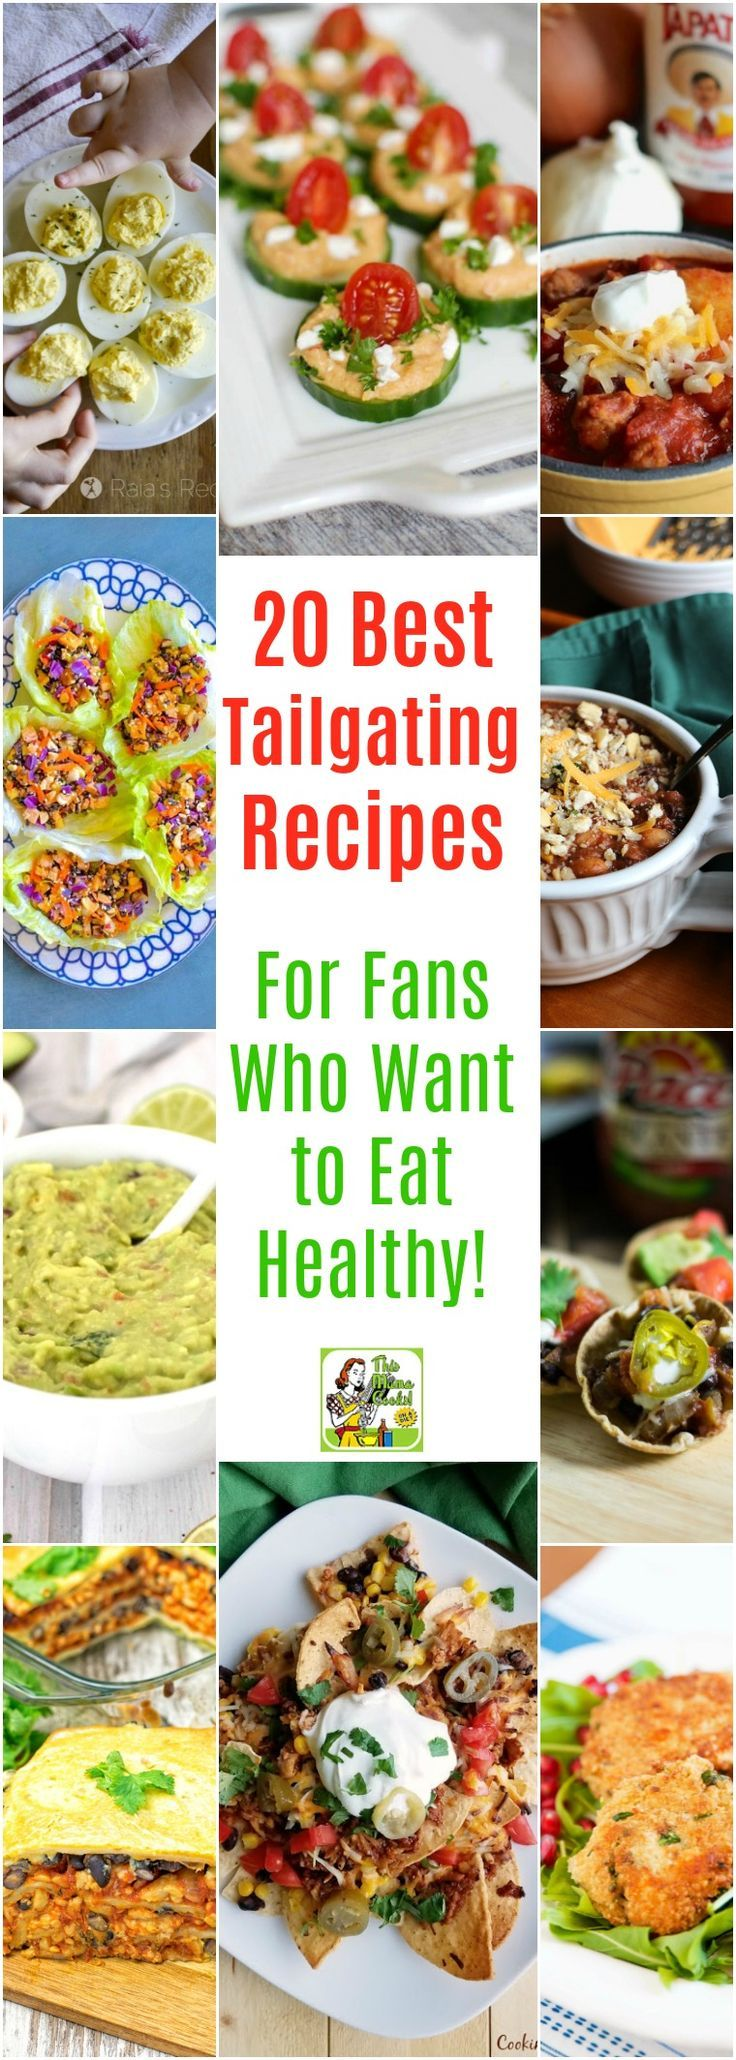 20 Best Tailgating Recipes for Fans Who Want to Eat Healthy!  Tired of going to a tailgating party just to find there's nothing you can eat because of a food sensitivity, allergy or special diet? Here's a collection of delicious top tailgating recipes that will certainly please football fans that want to eat healthy or who are on special diets from gluten free to vegan. #tailgatefood